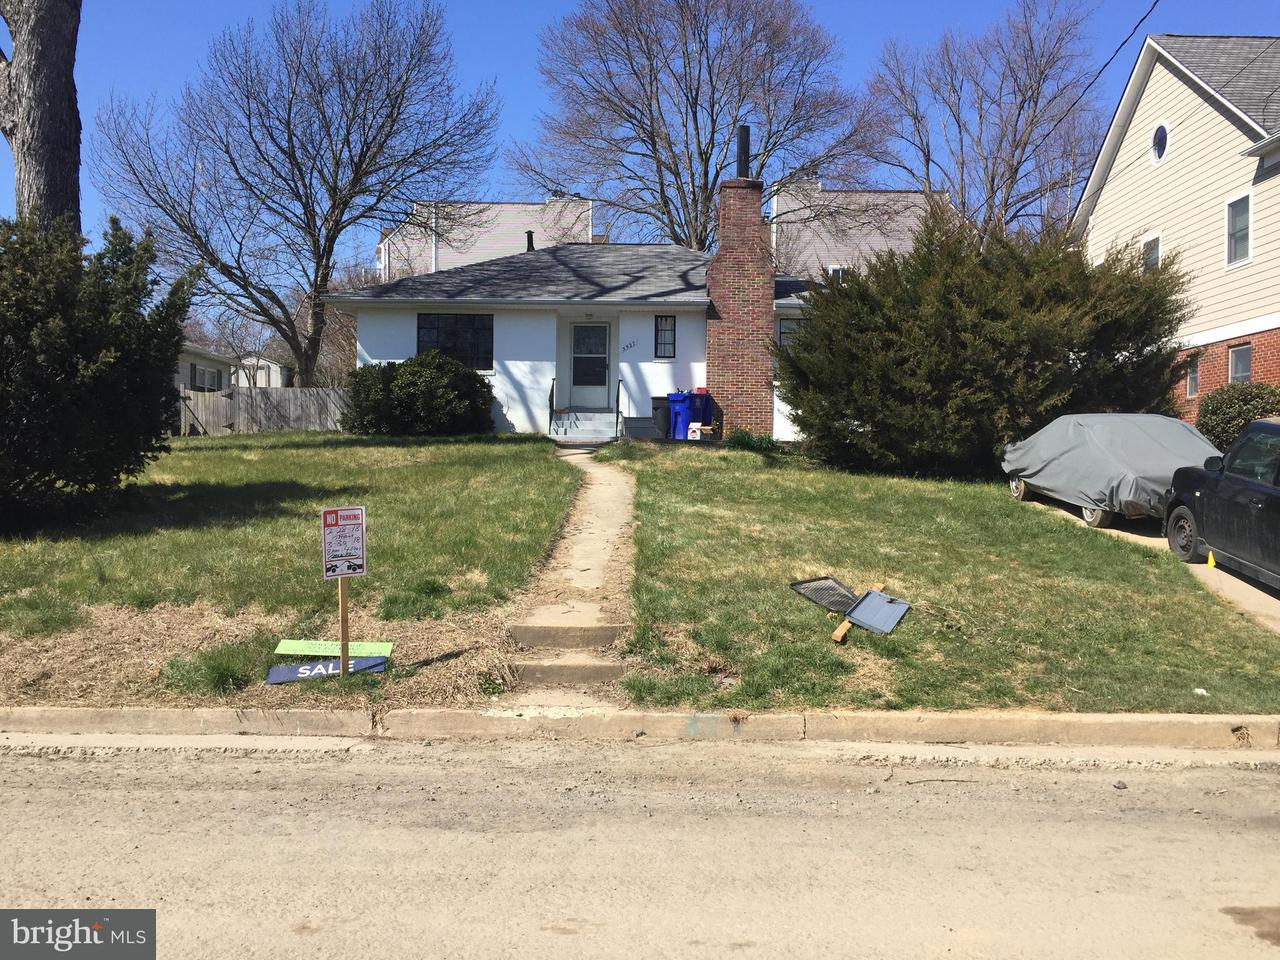 Land for Sale at 5527 24th St N 5527 24th St N Arlington, Virginia 22205 United States